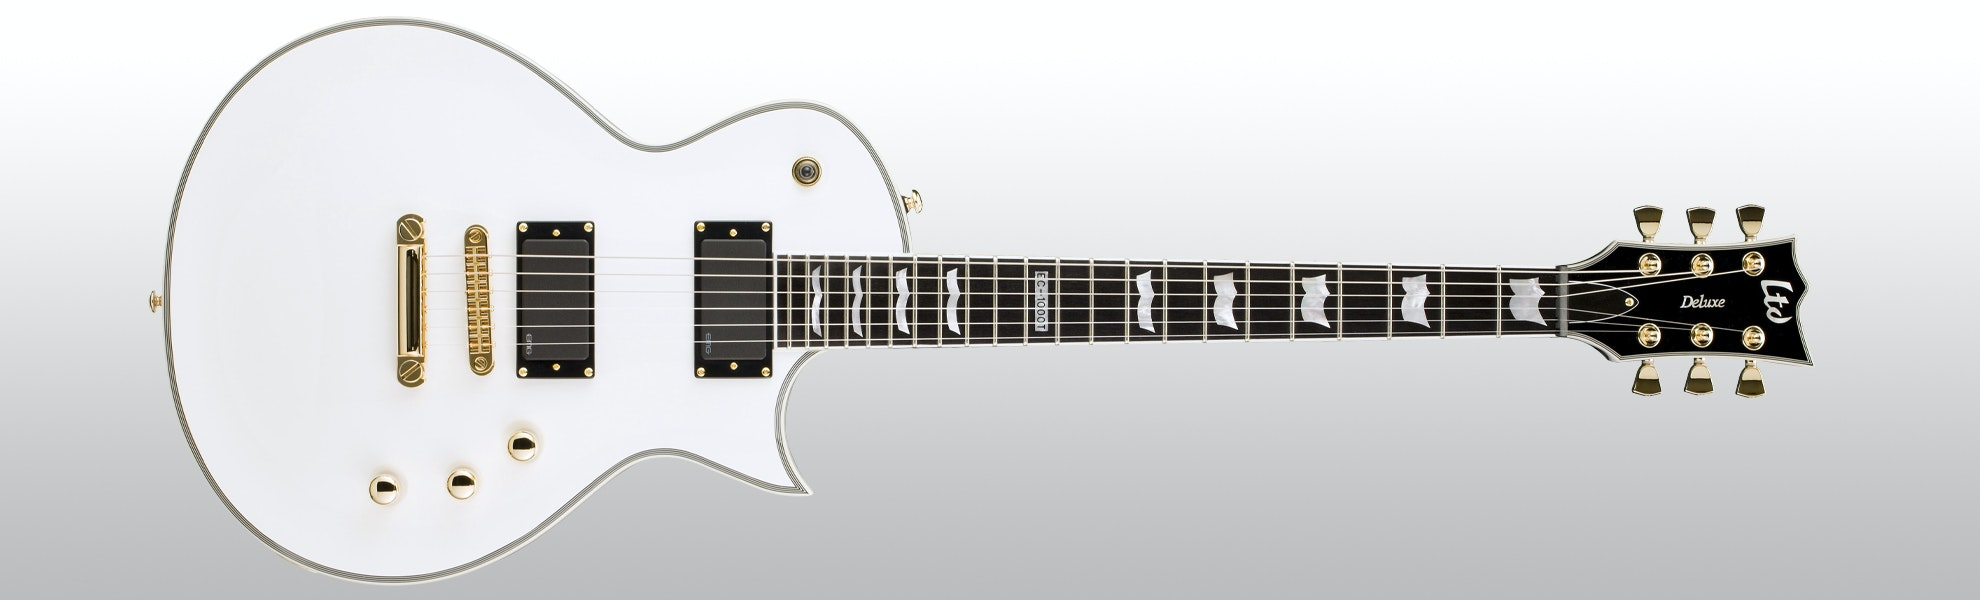 ESP B-Stock Guitars LEC1000 Series